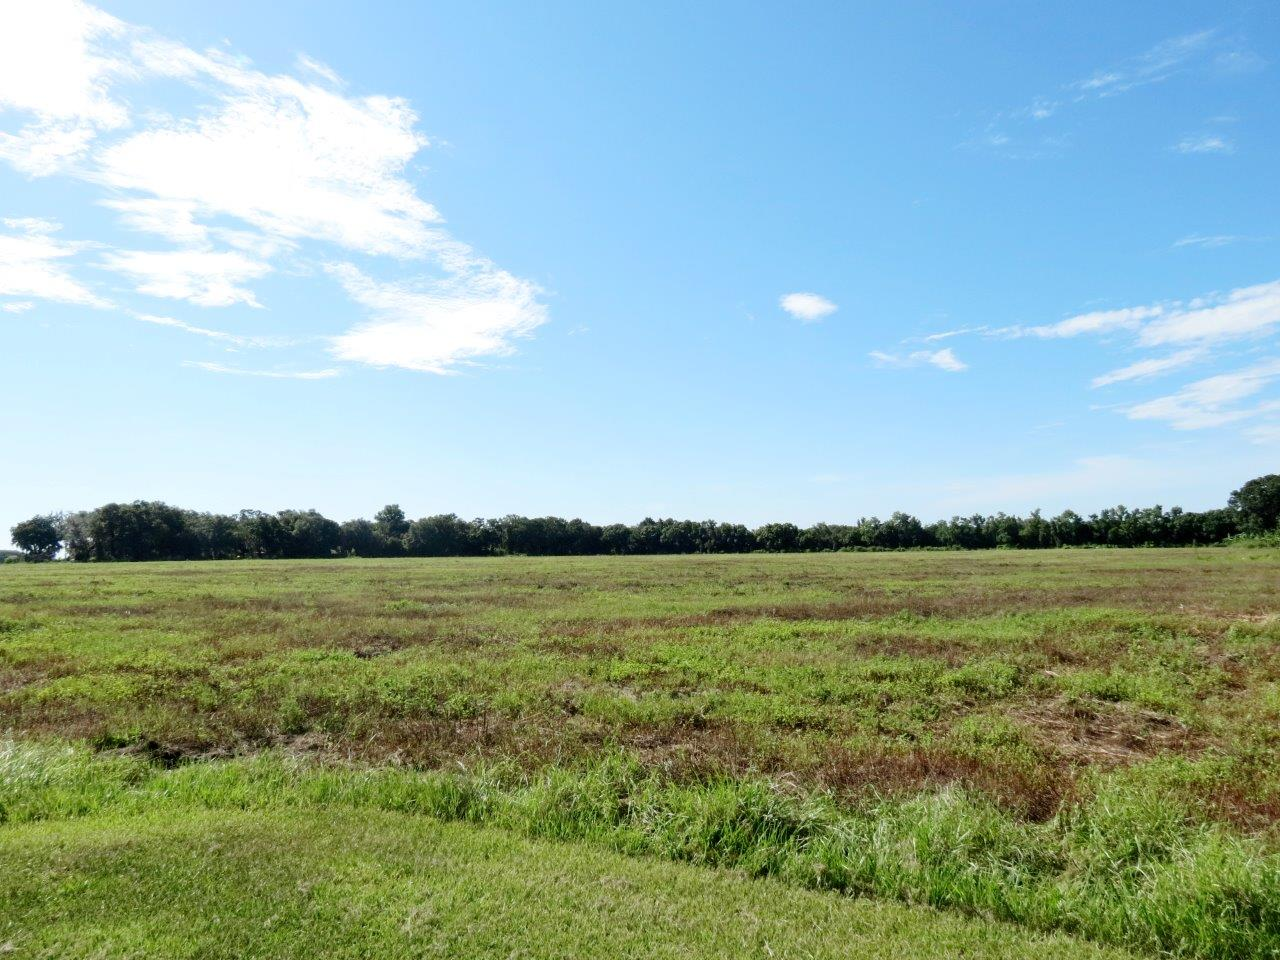 Grange Hall Loop Farm 83 Acres in Wimauma, FL